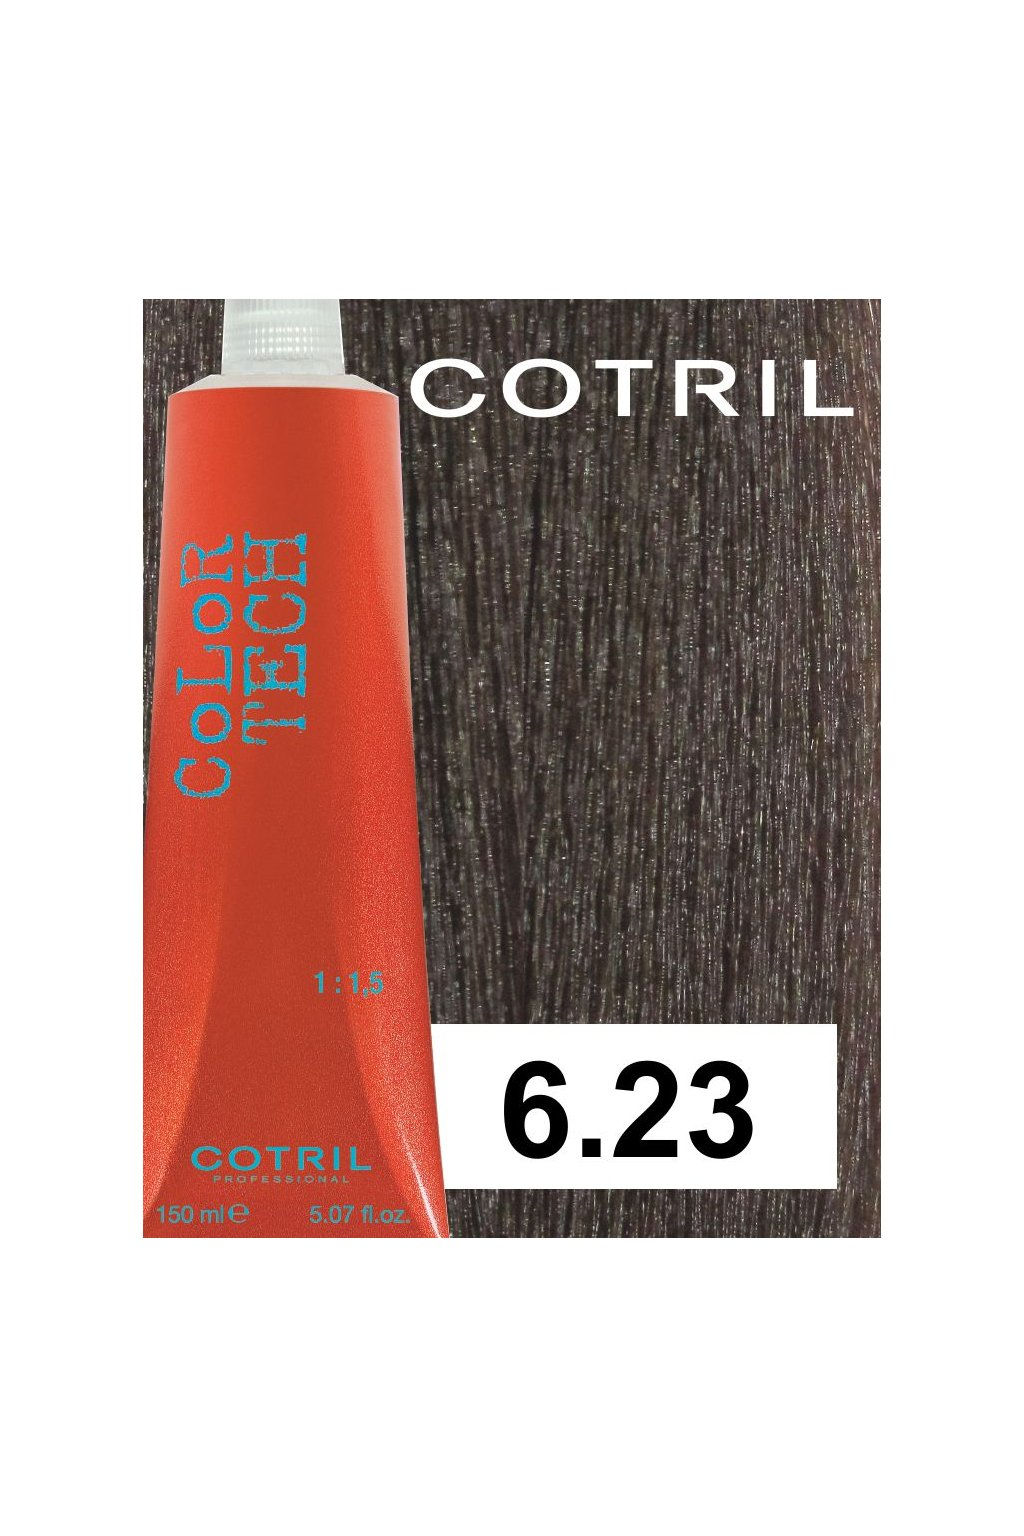 6 23 ct cotril